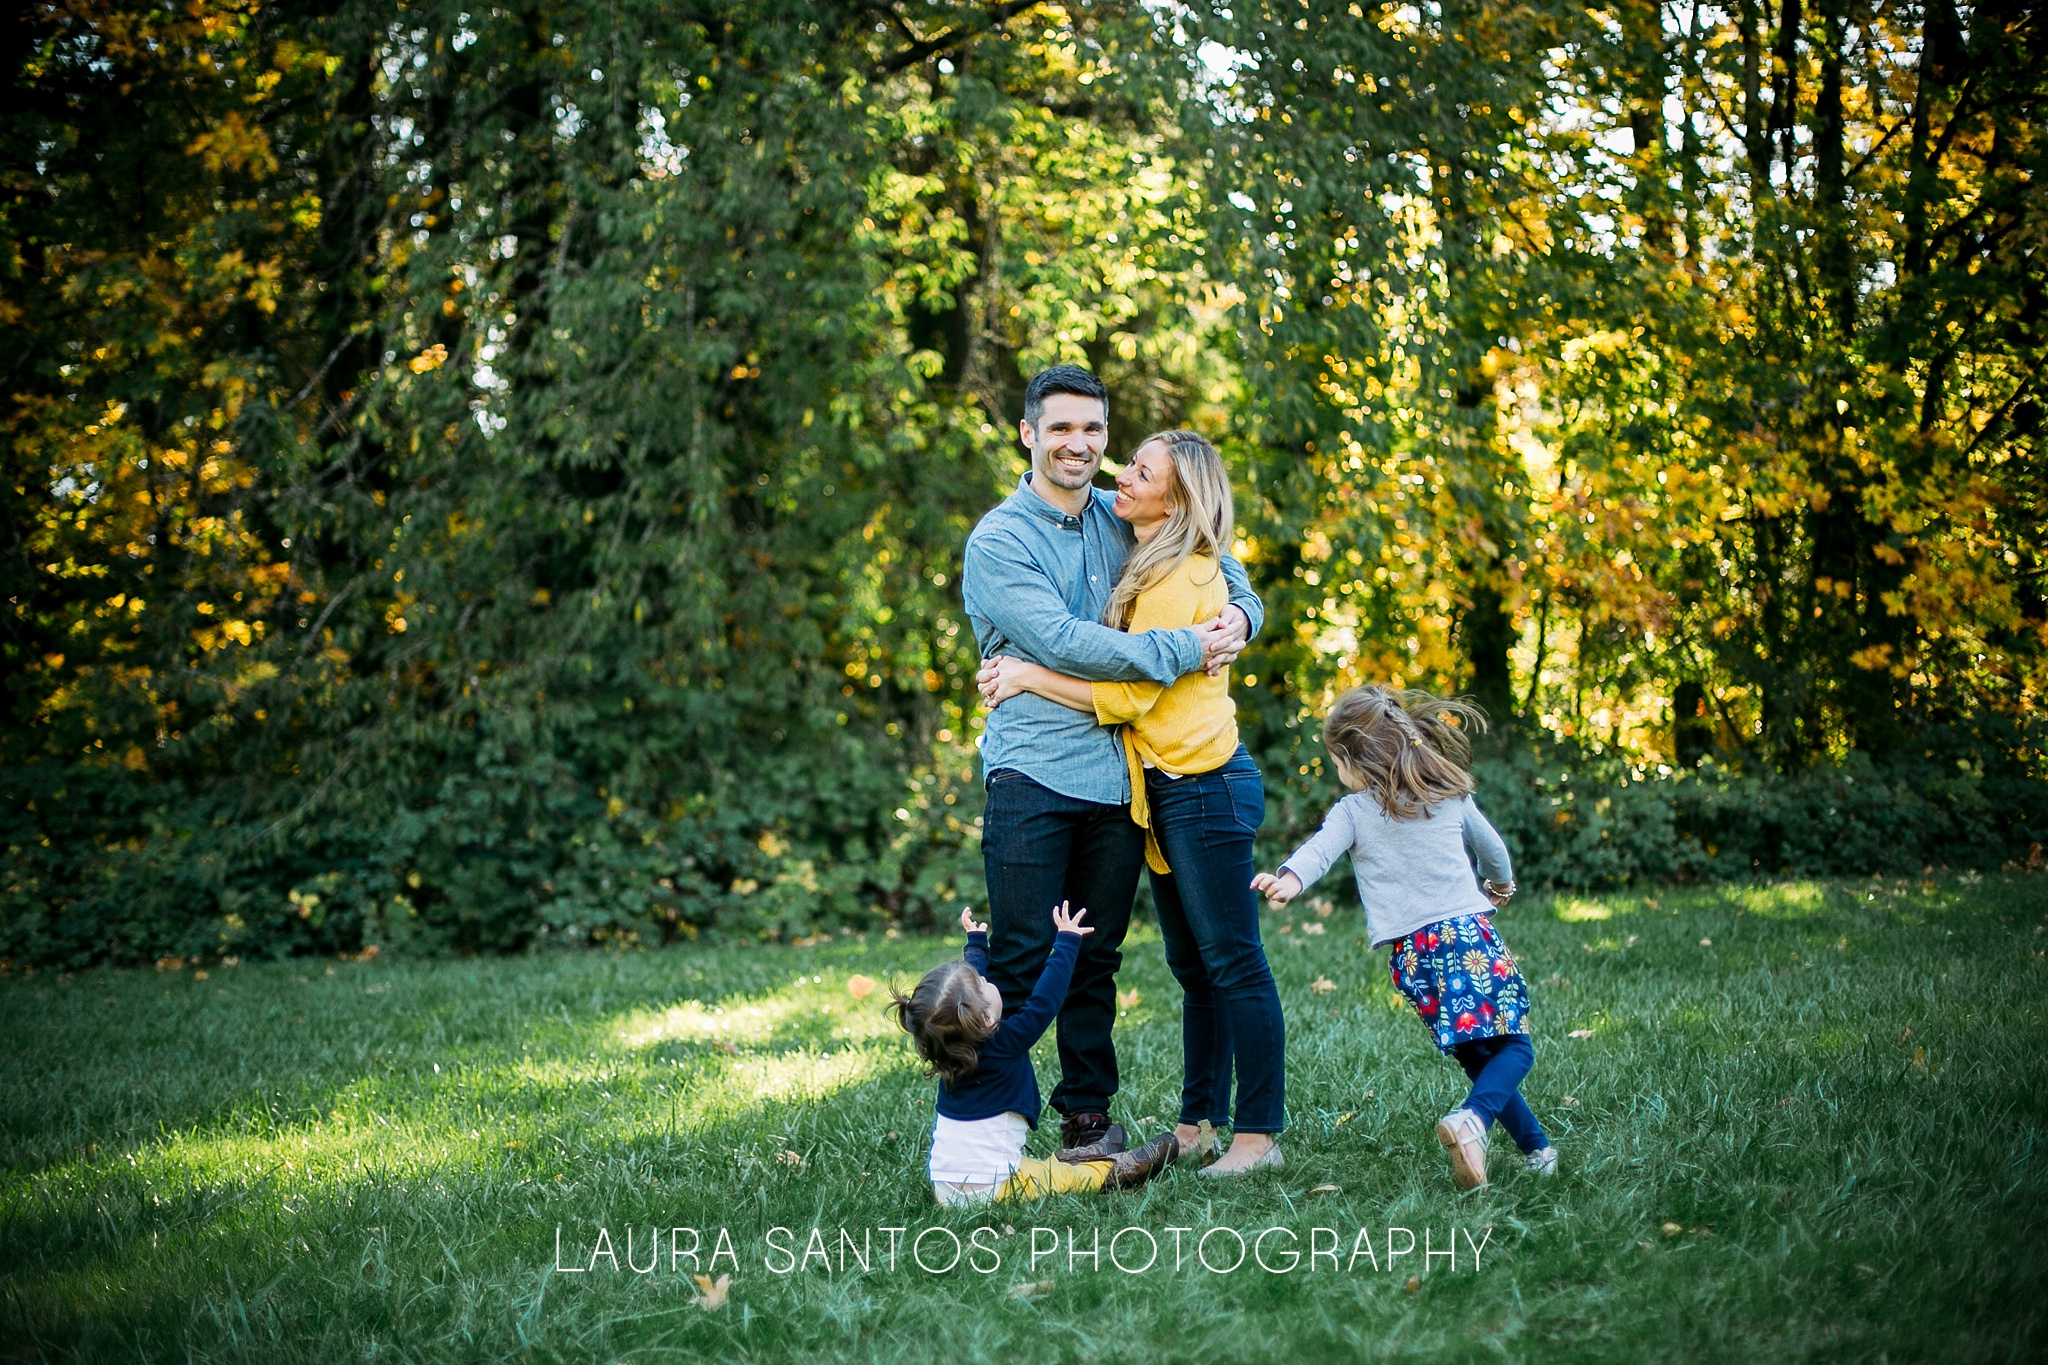 Laura Santos Photography Portland Oregon Family Photographer_0098.jpg